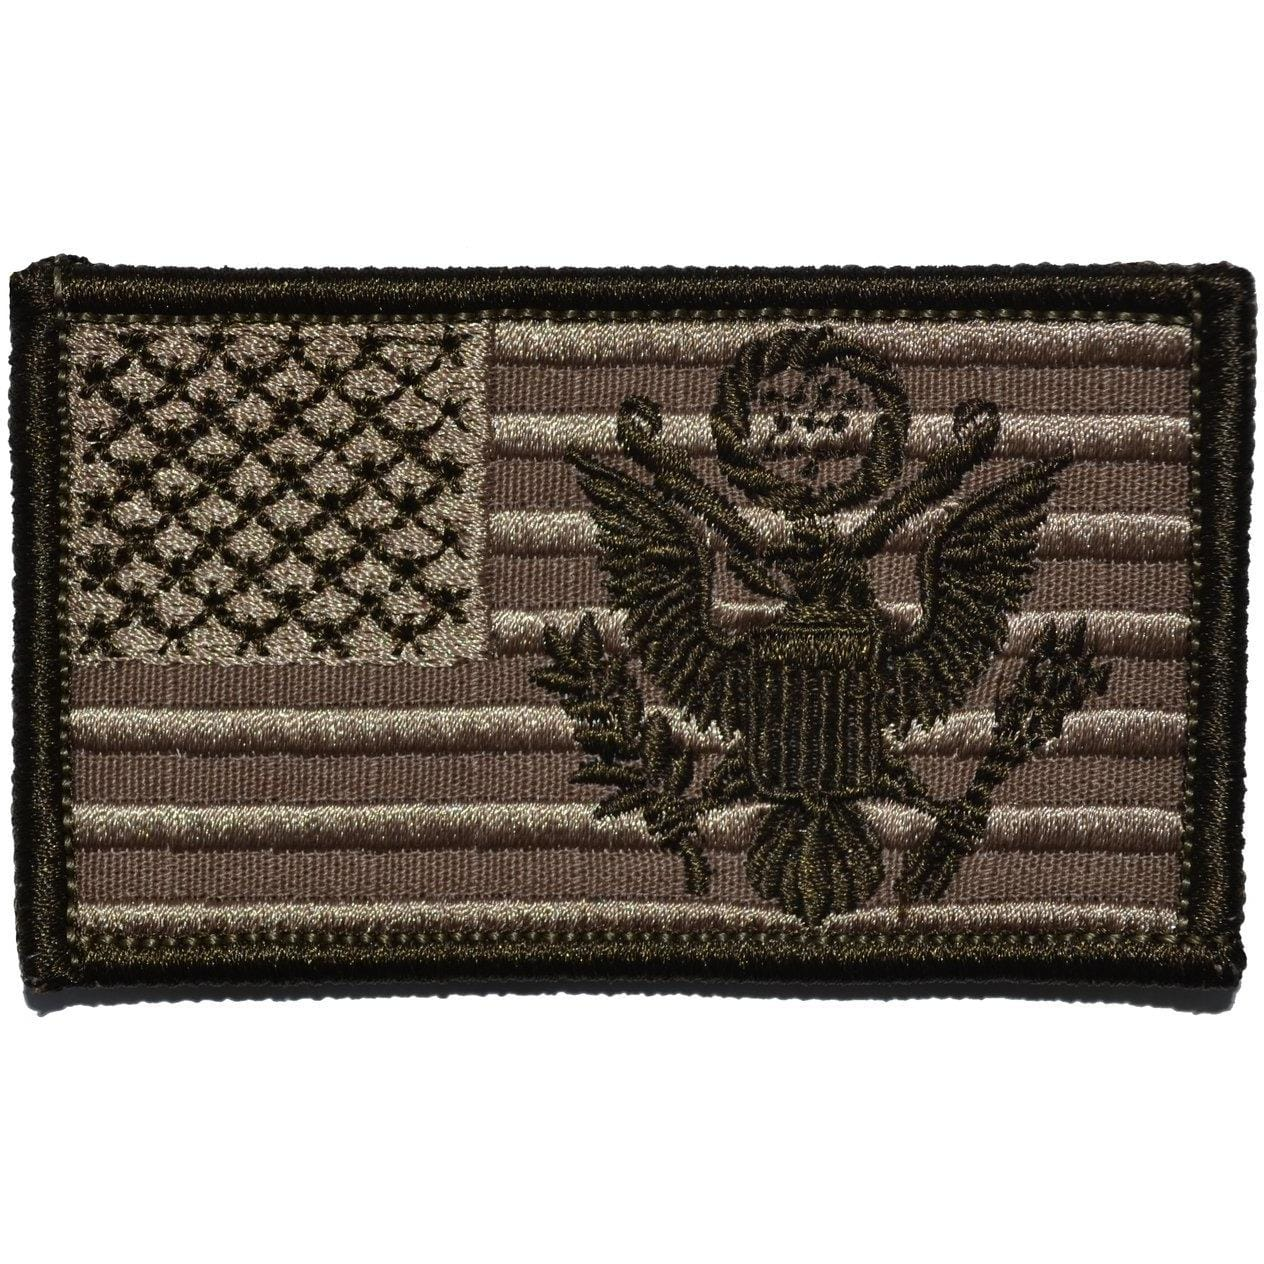 Tactical Gear Junkie Patches Coyote Brown USA Flag with Superimposed U.S. Army Crest - 2x3.5 Patch